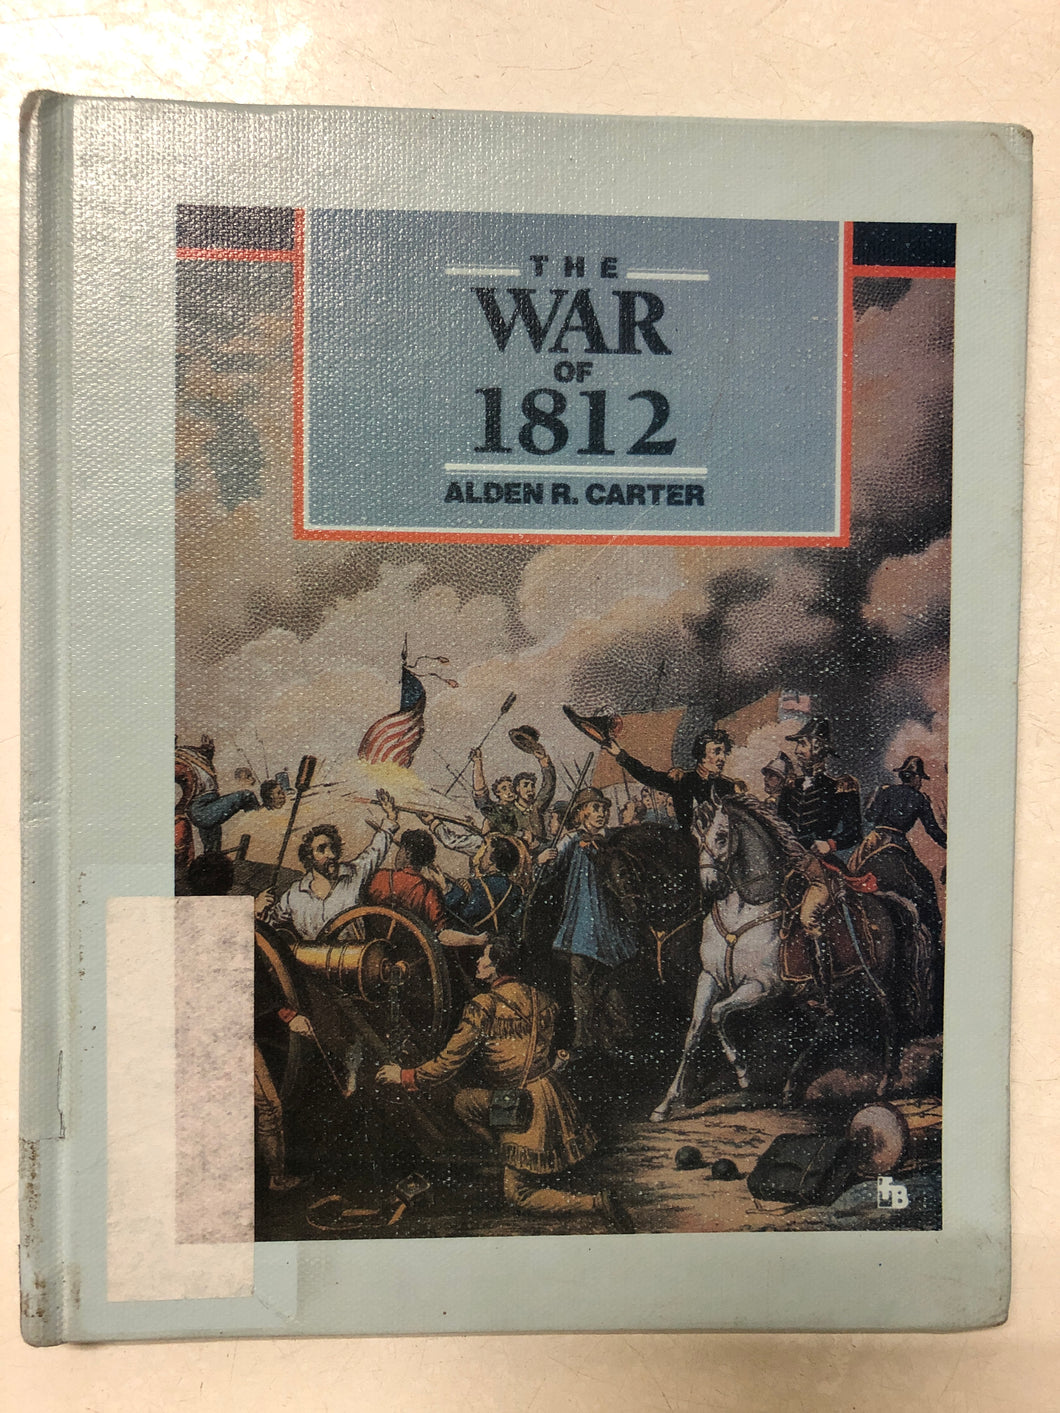 The War of 1812 Second Fight For Independence - Slick Cat Books